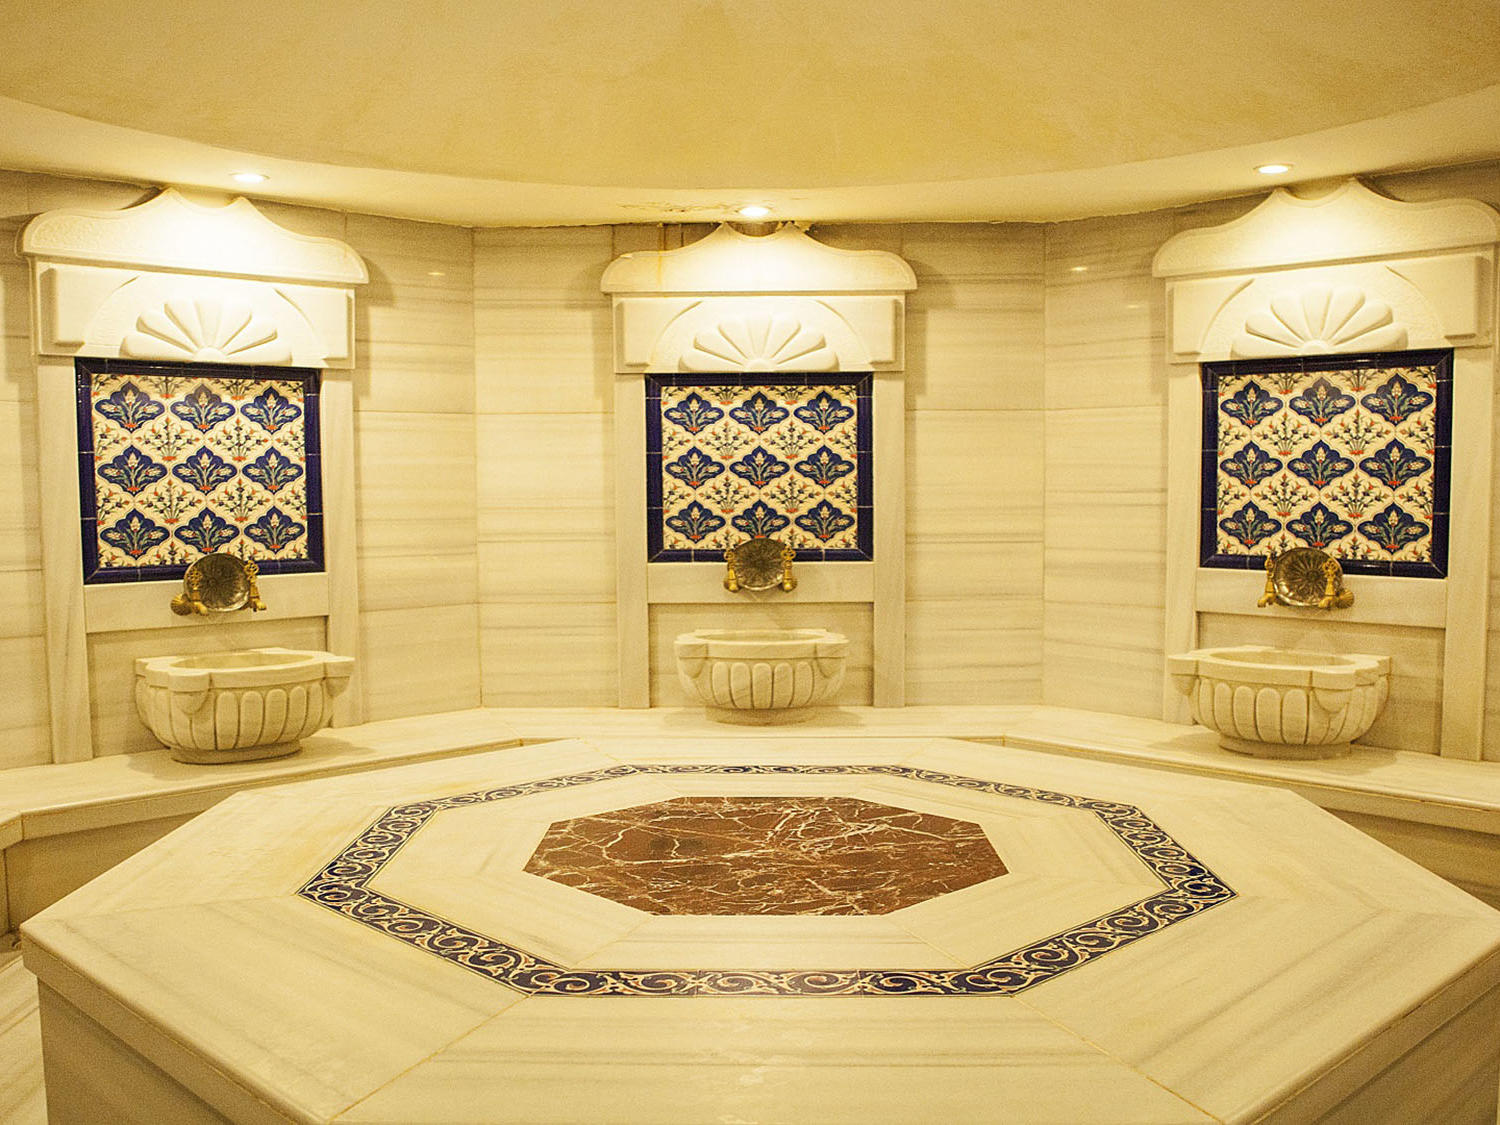 Turkish bath at Bilek Istanbul Hotel